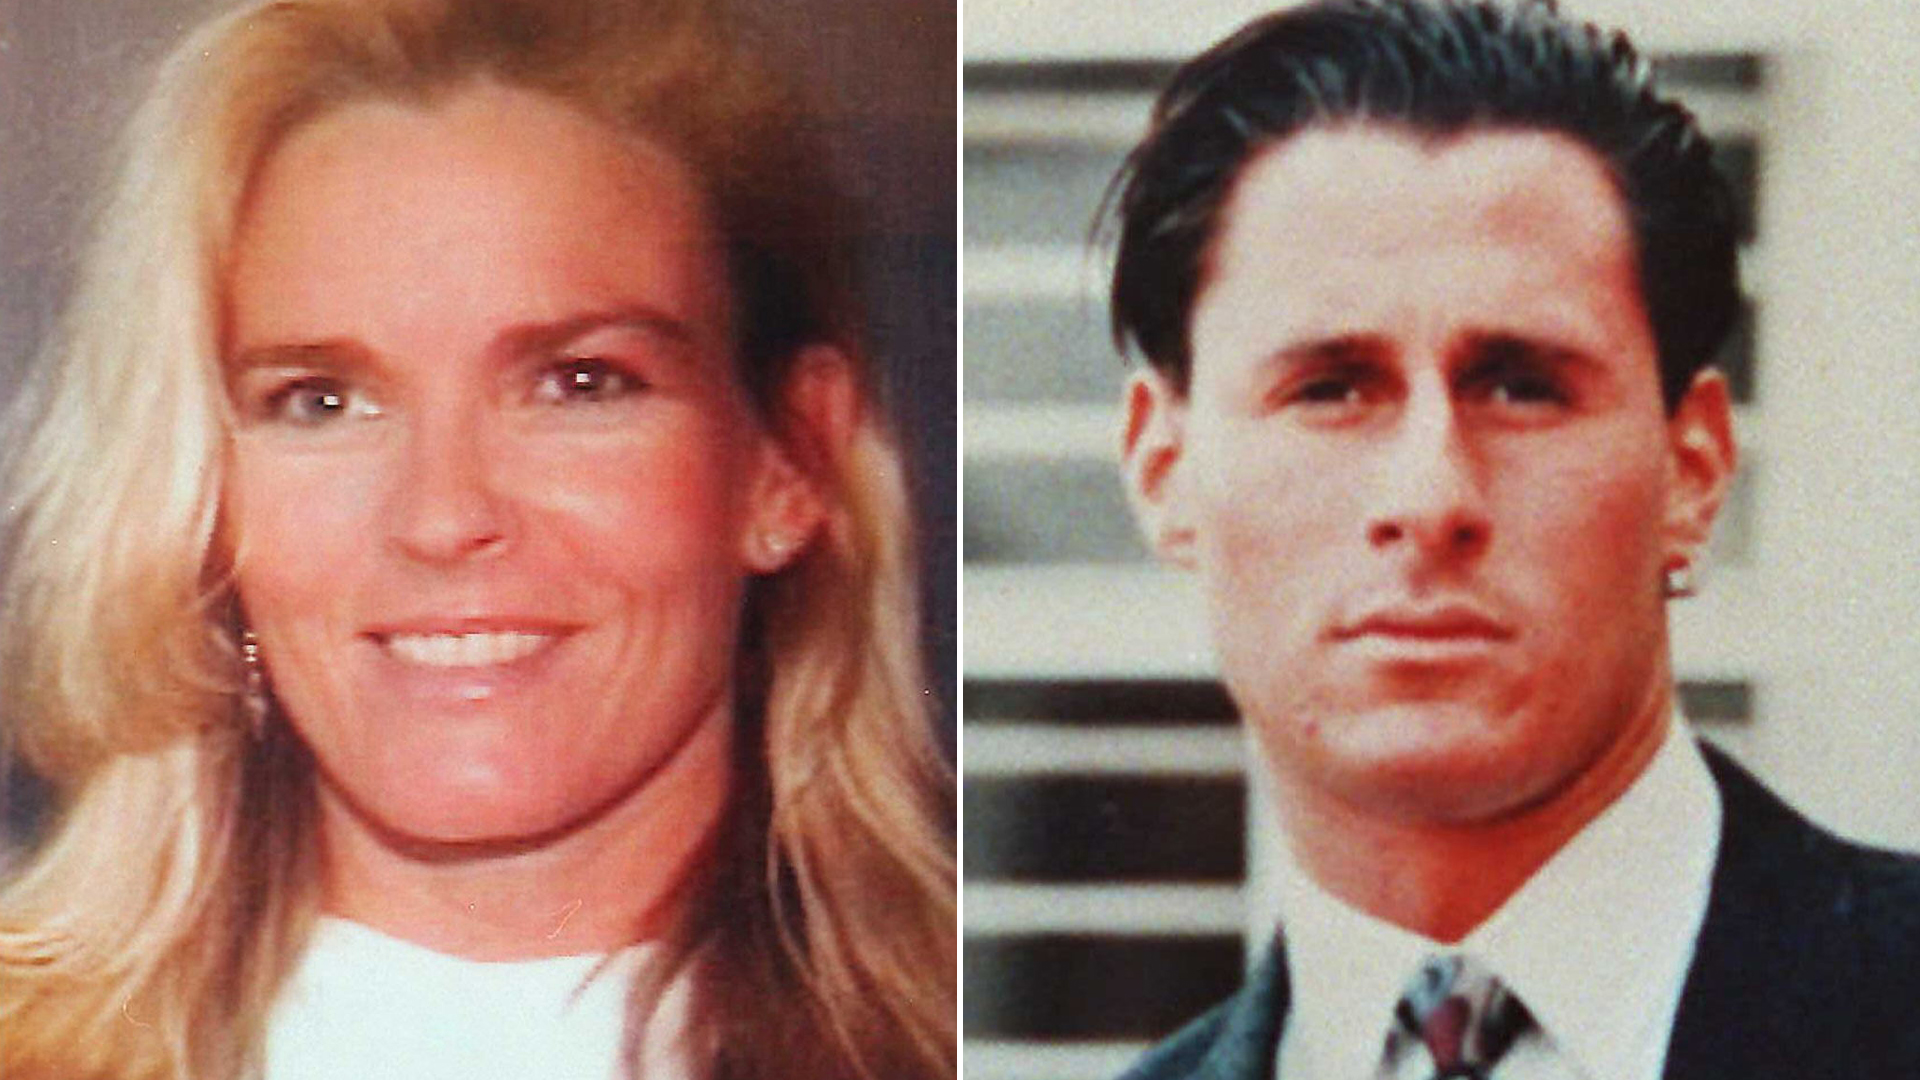 Nicole Brown Simpson and Ronald Goldman are seen in file photos. (Credit: Getty Images)